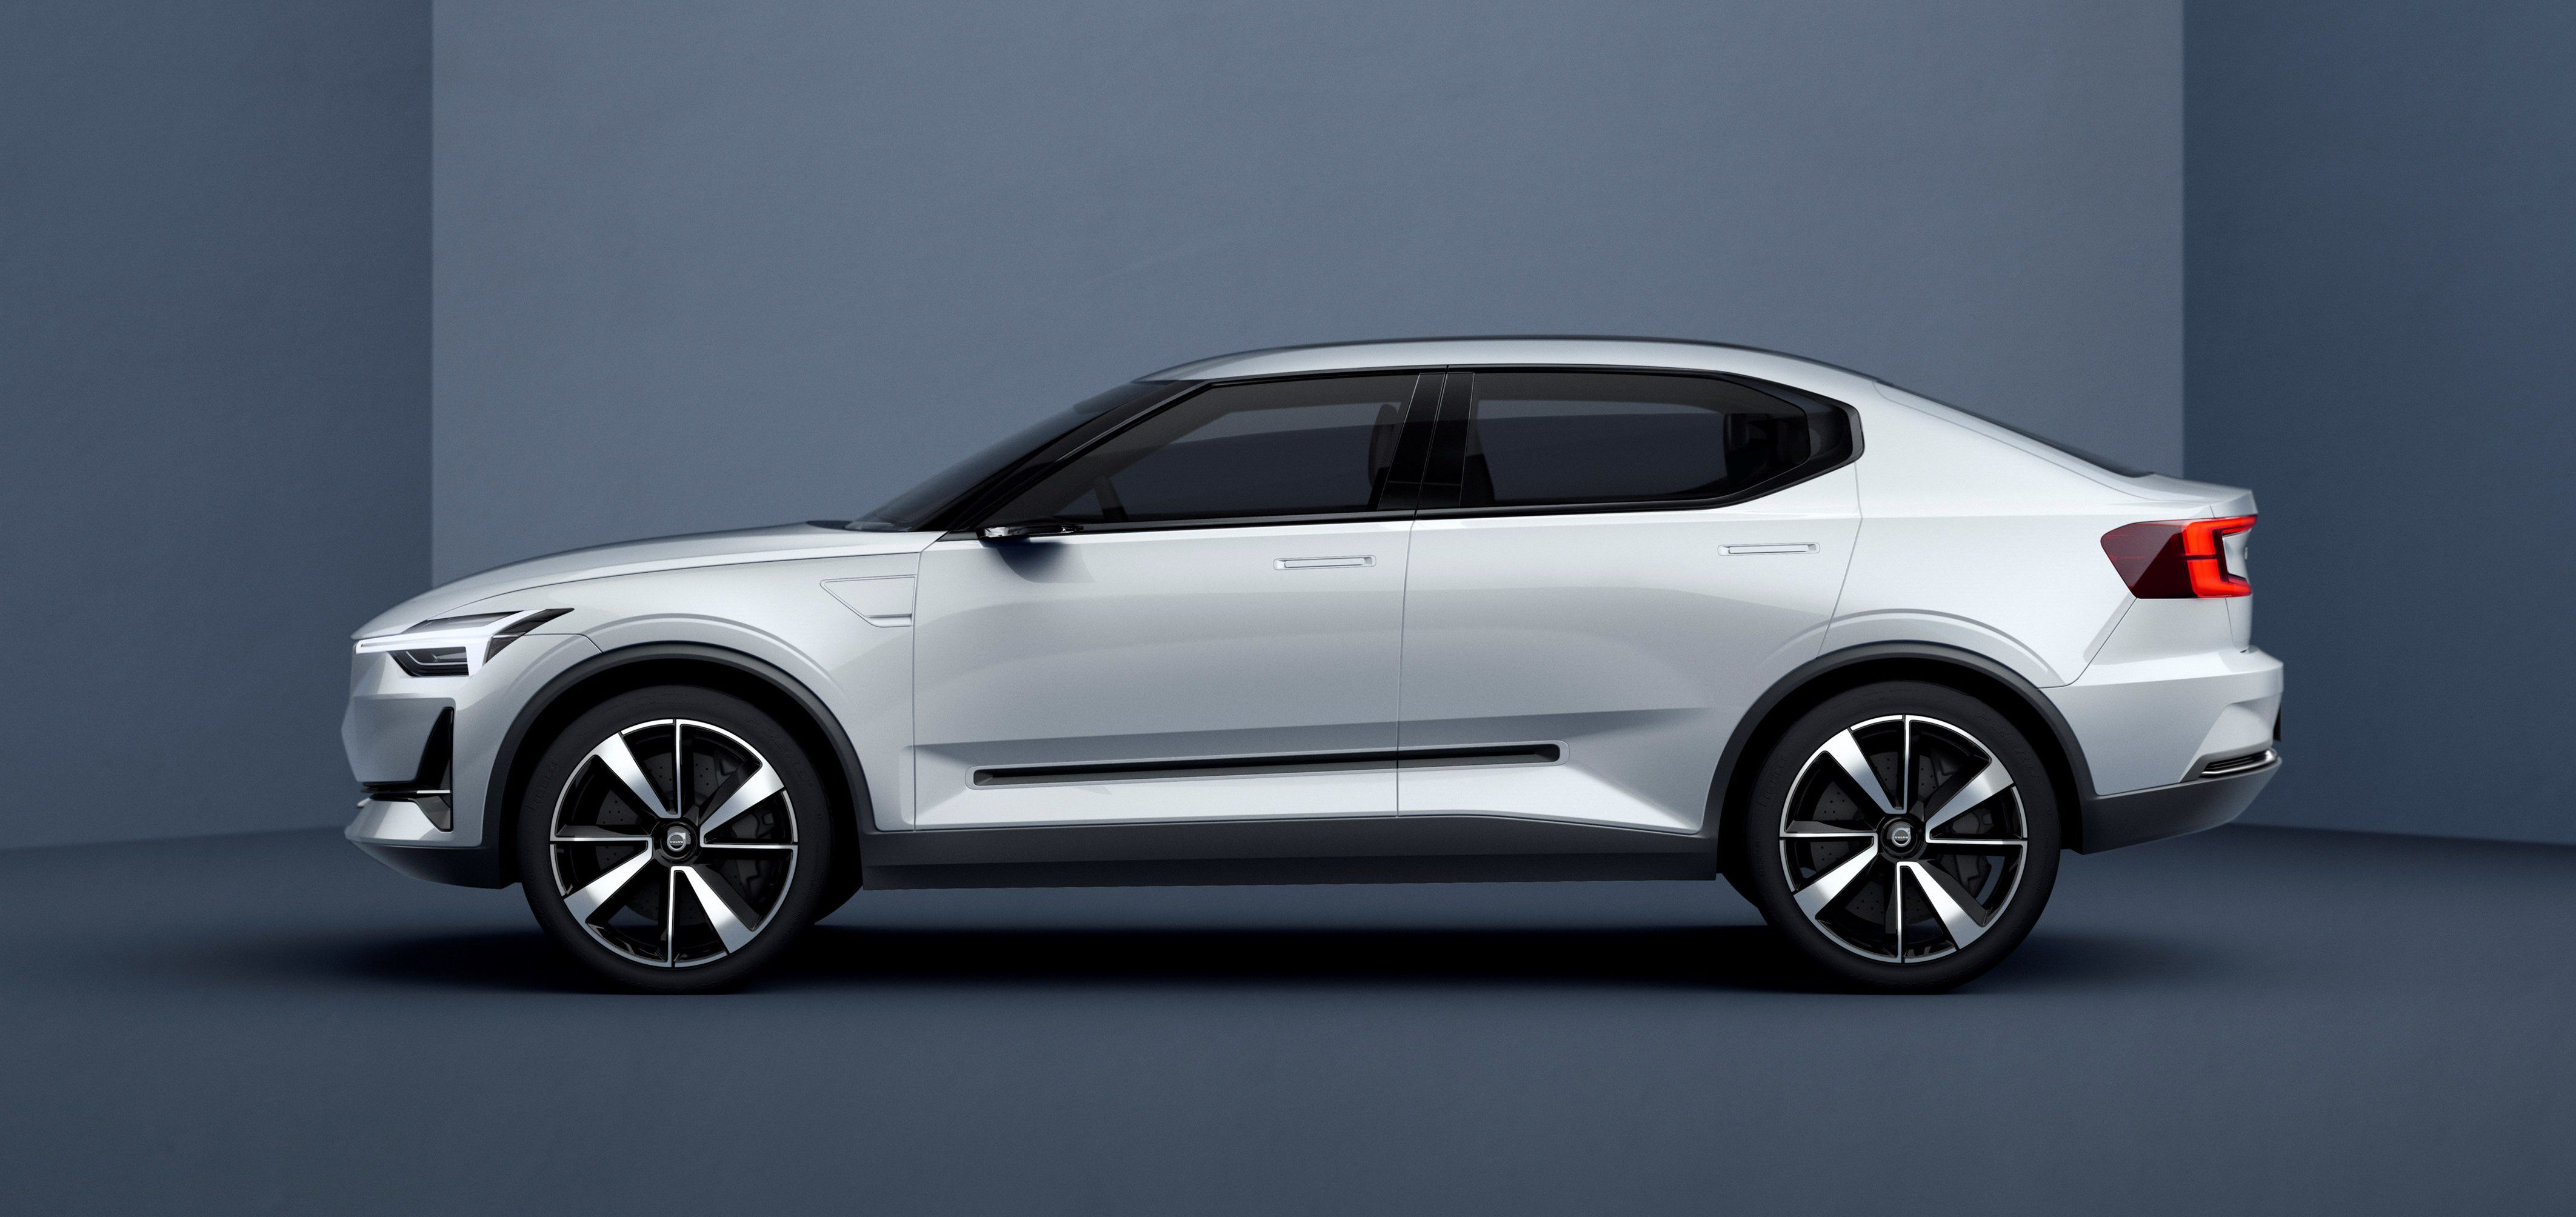 Volvo Says Its First All Electric Vehicle Is Coming In 2019 With Battery Packs Up To 100 Kwh